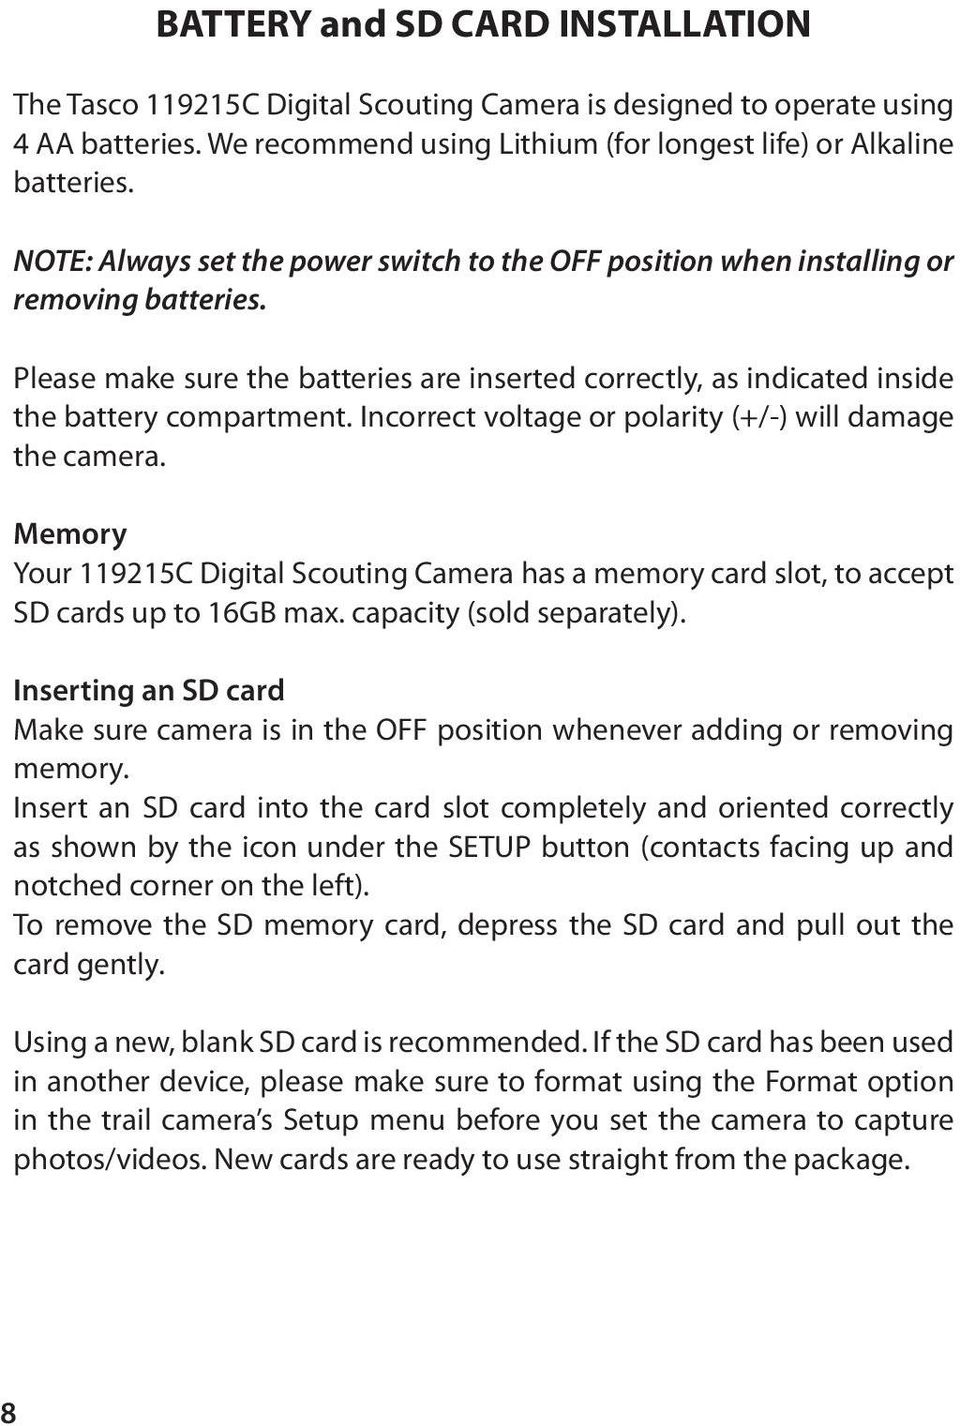 Incorrect voltage or polarity (+/-) will damage the camera. Memory Your 119215C Digital Scouting Camera has a memory card slot, to accept SD cards up to 16GB max. capacity (sold separately).